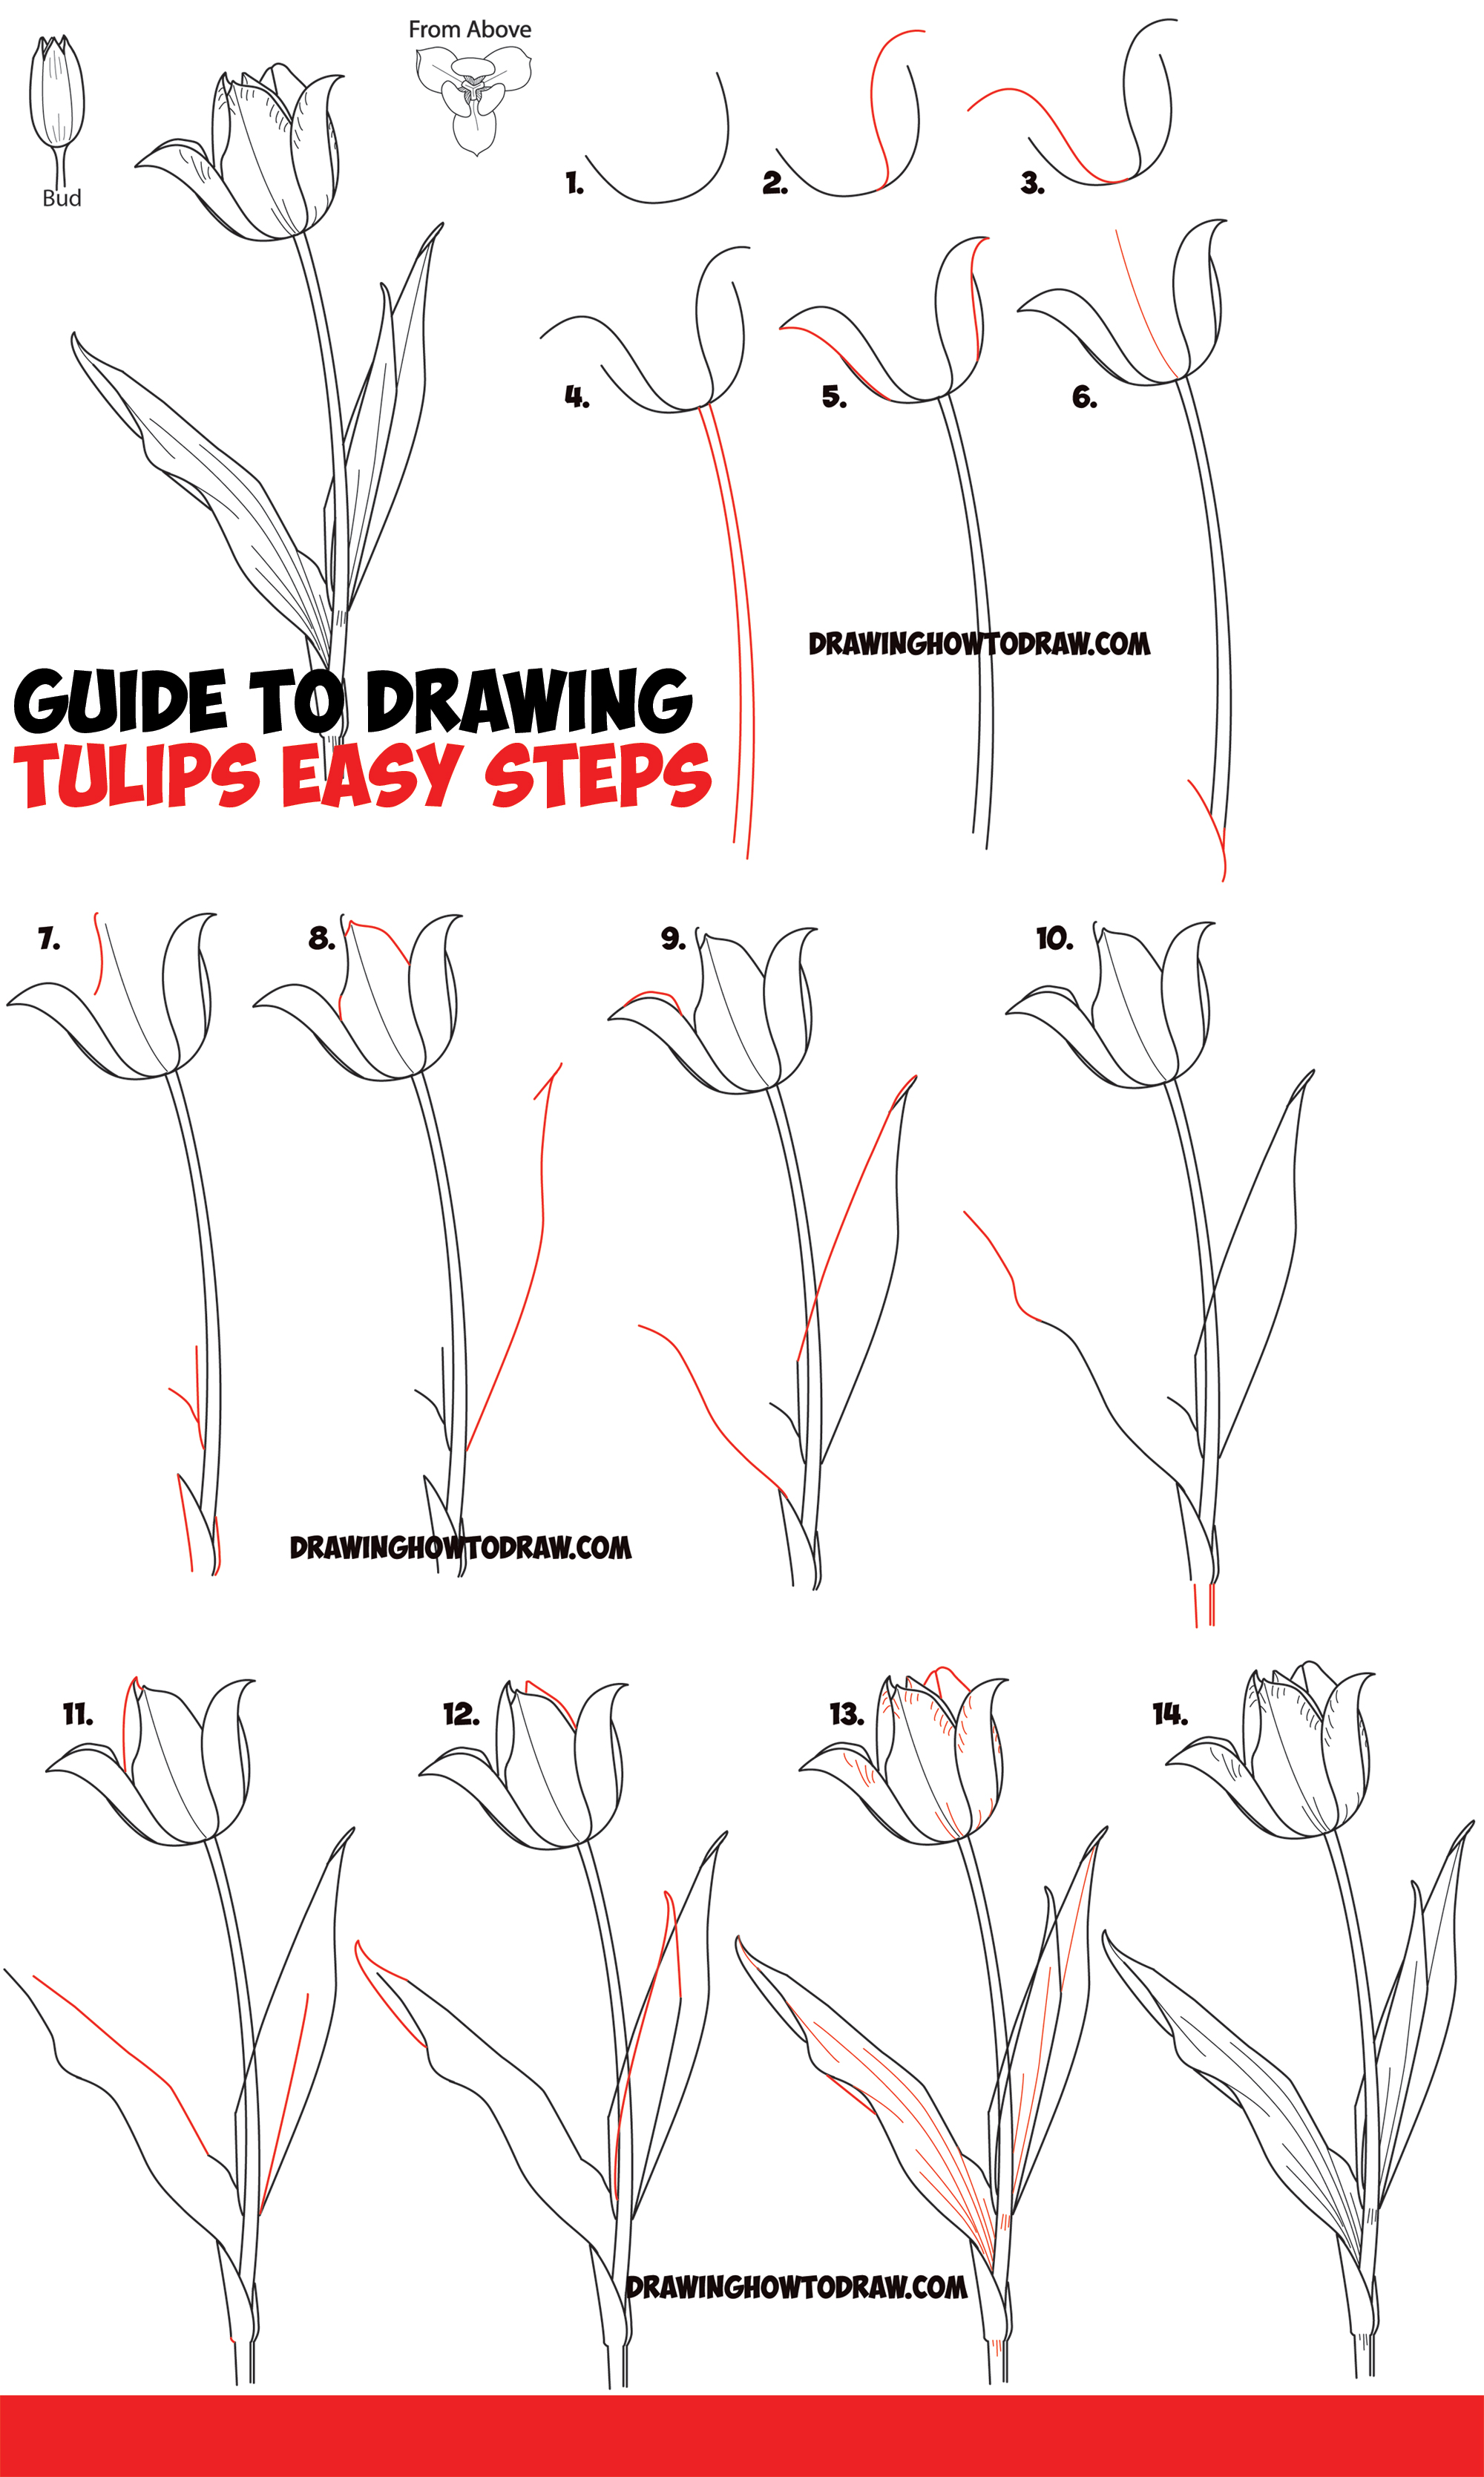 How to Draw Tulips - Guide to Drawing Tulips from Side, From Above and as Young Buds